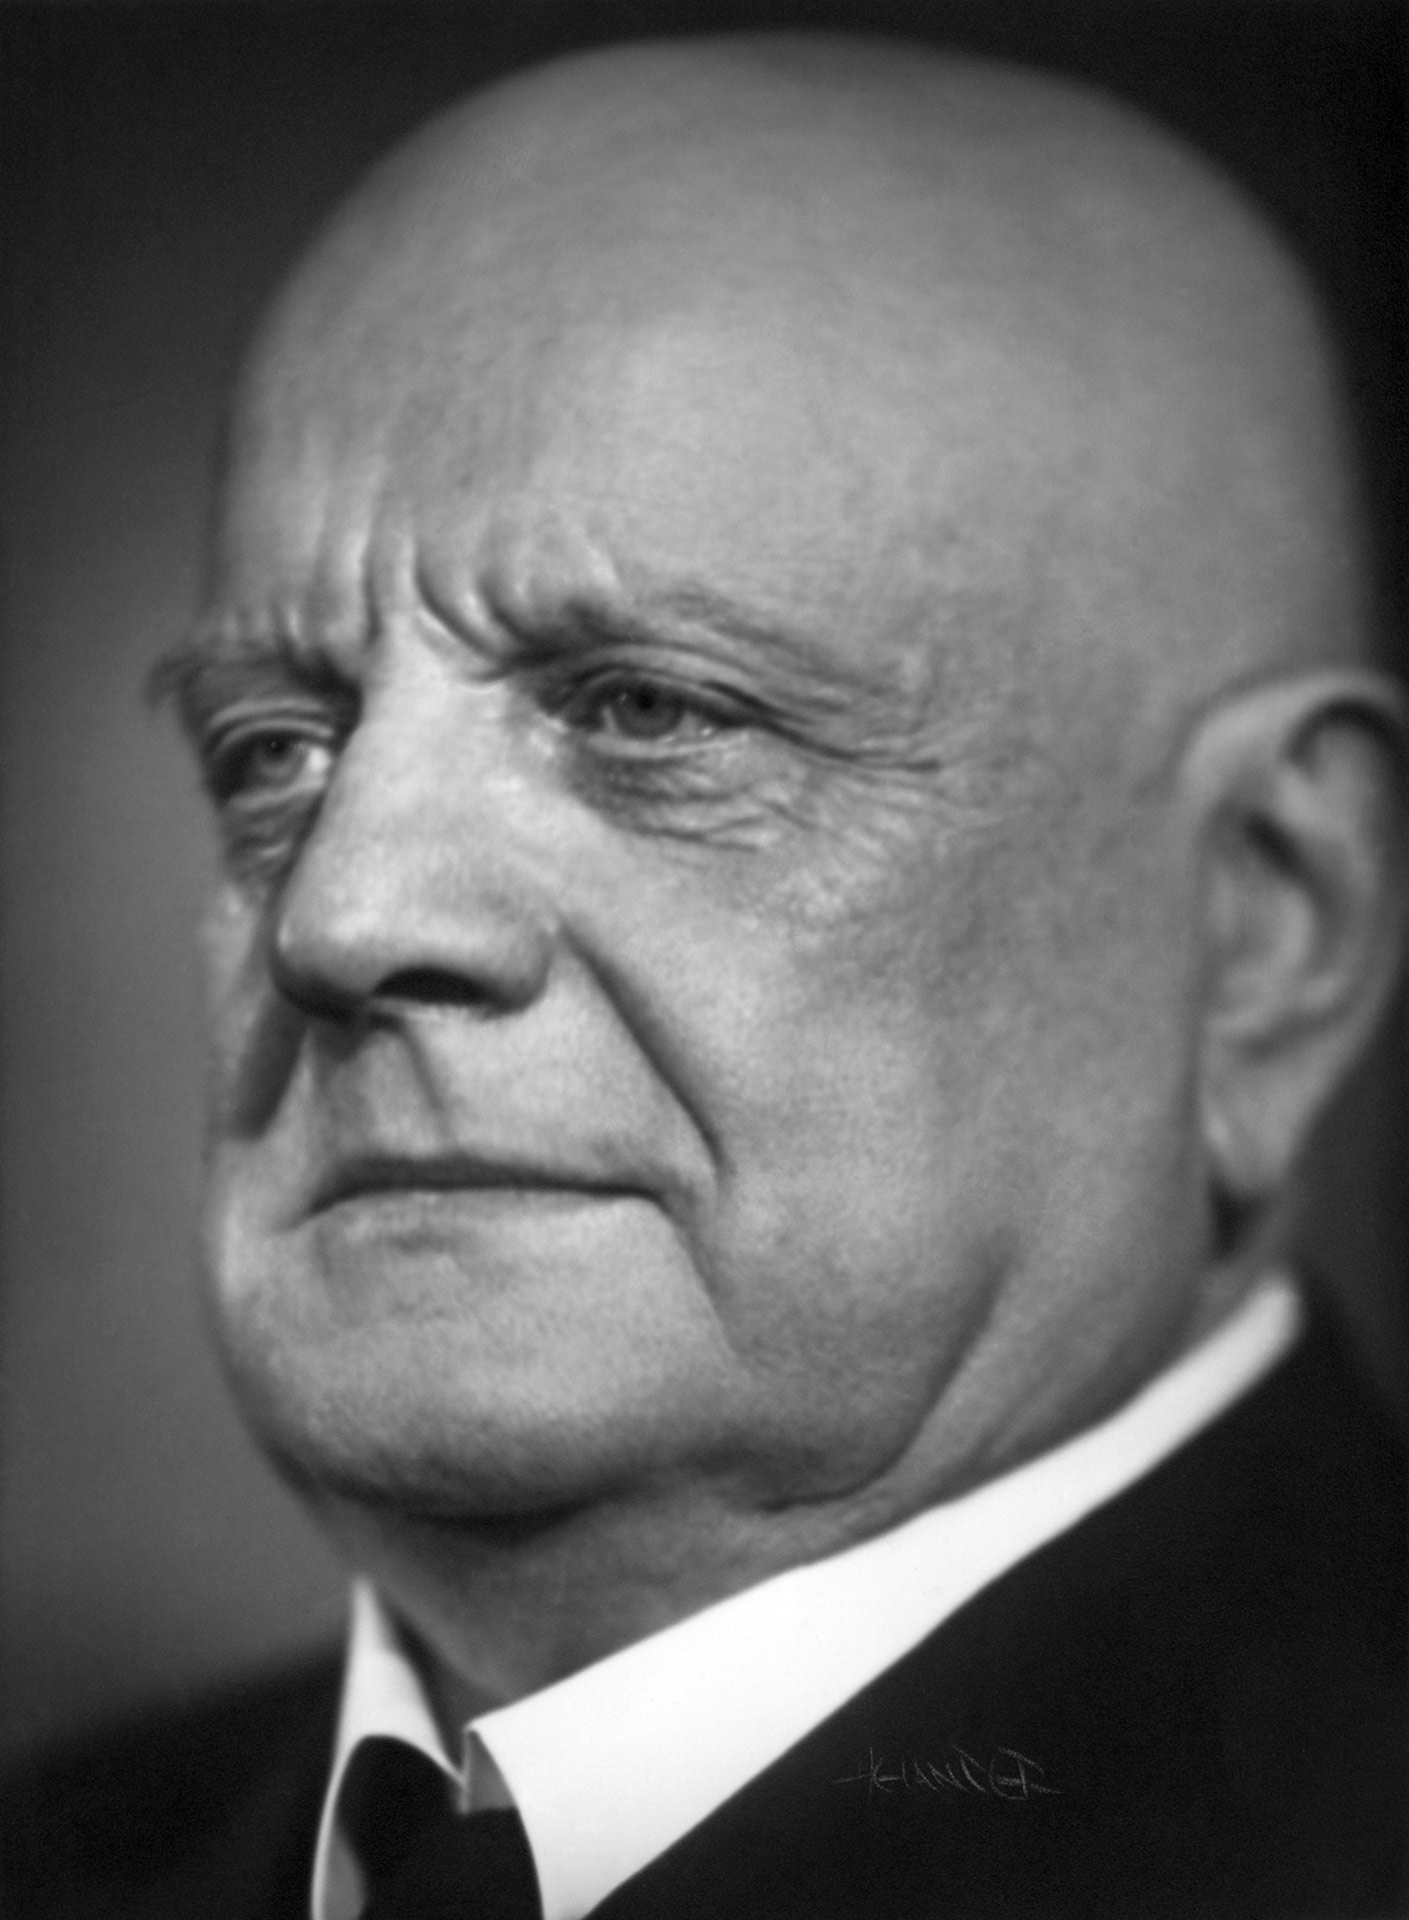 Jean Sibelius Andante Festivo Wikipedia the free encyclopedia